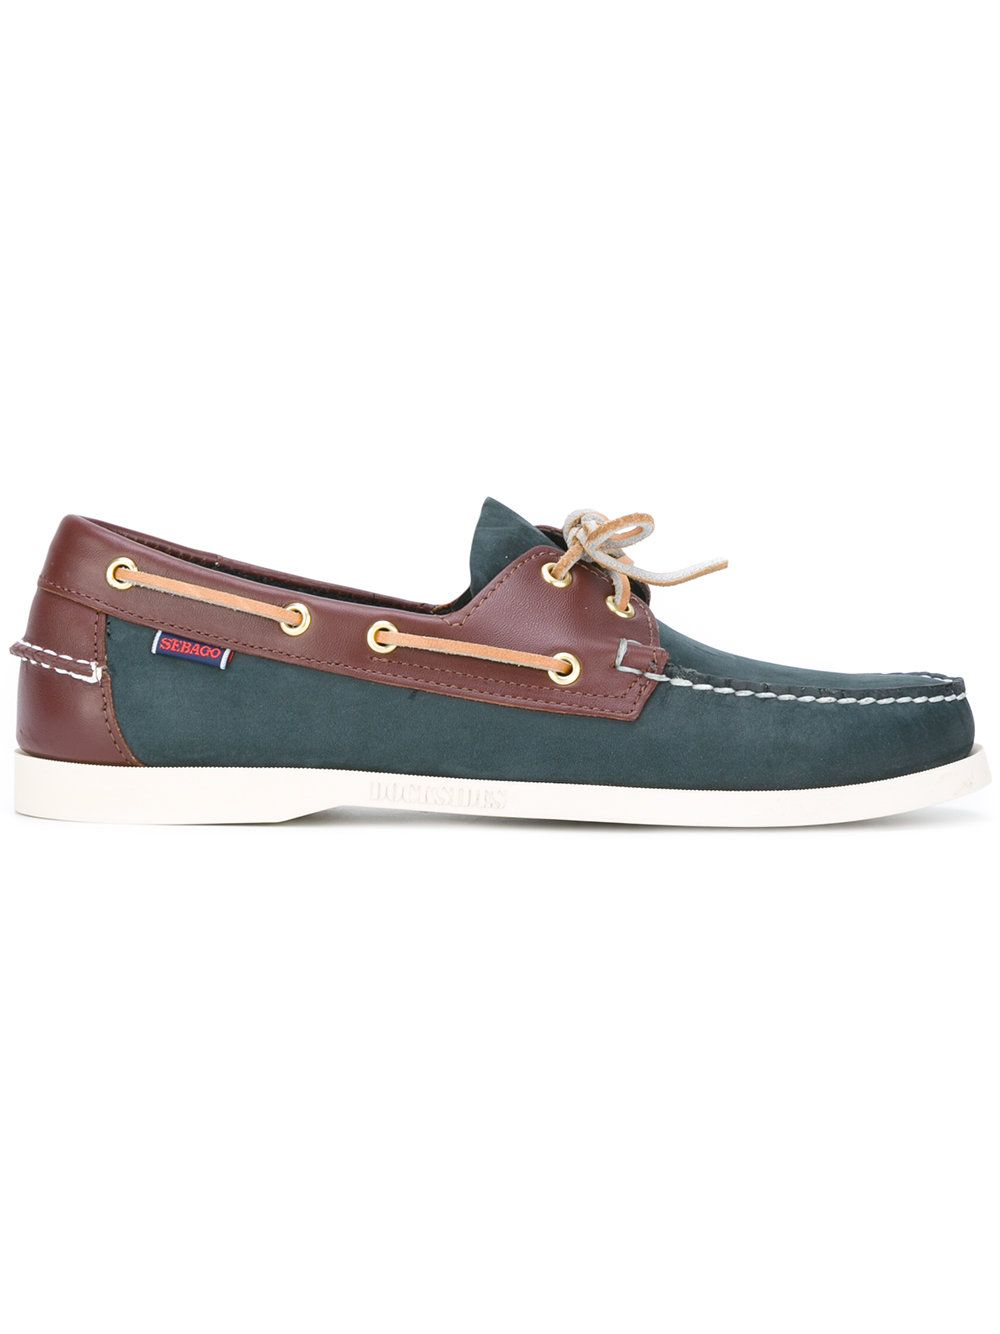 30999483708c1 Sebago zapatos de botes Docksides | Stilo in 2019 | Boat shoes ...